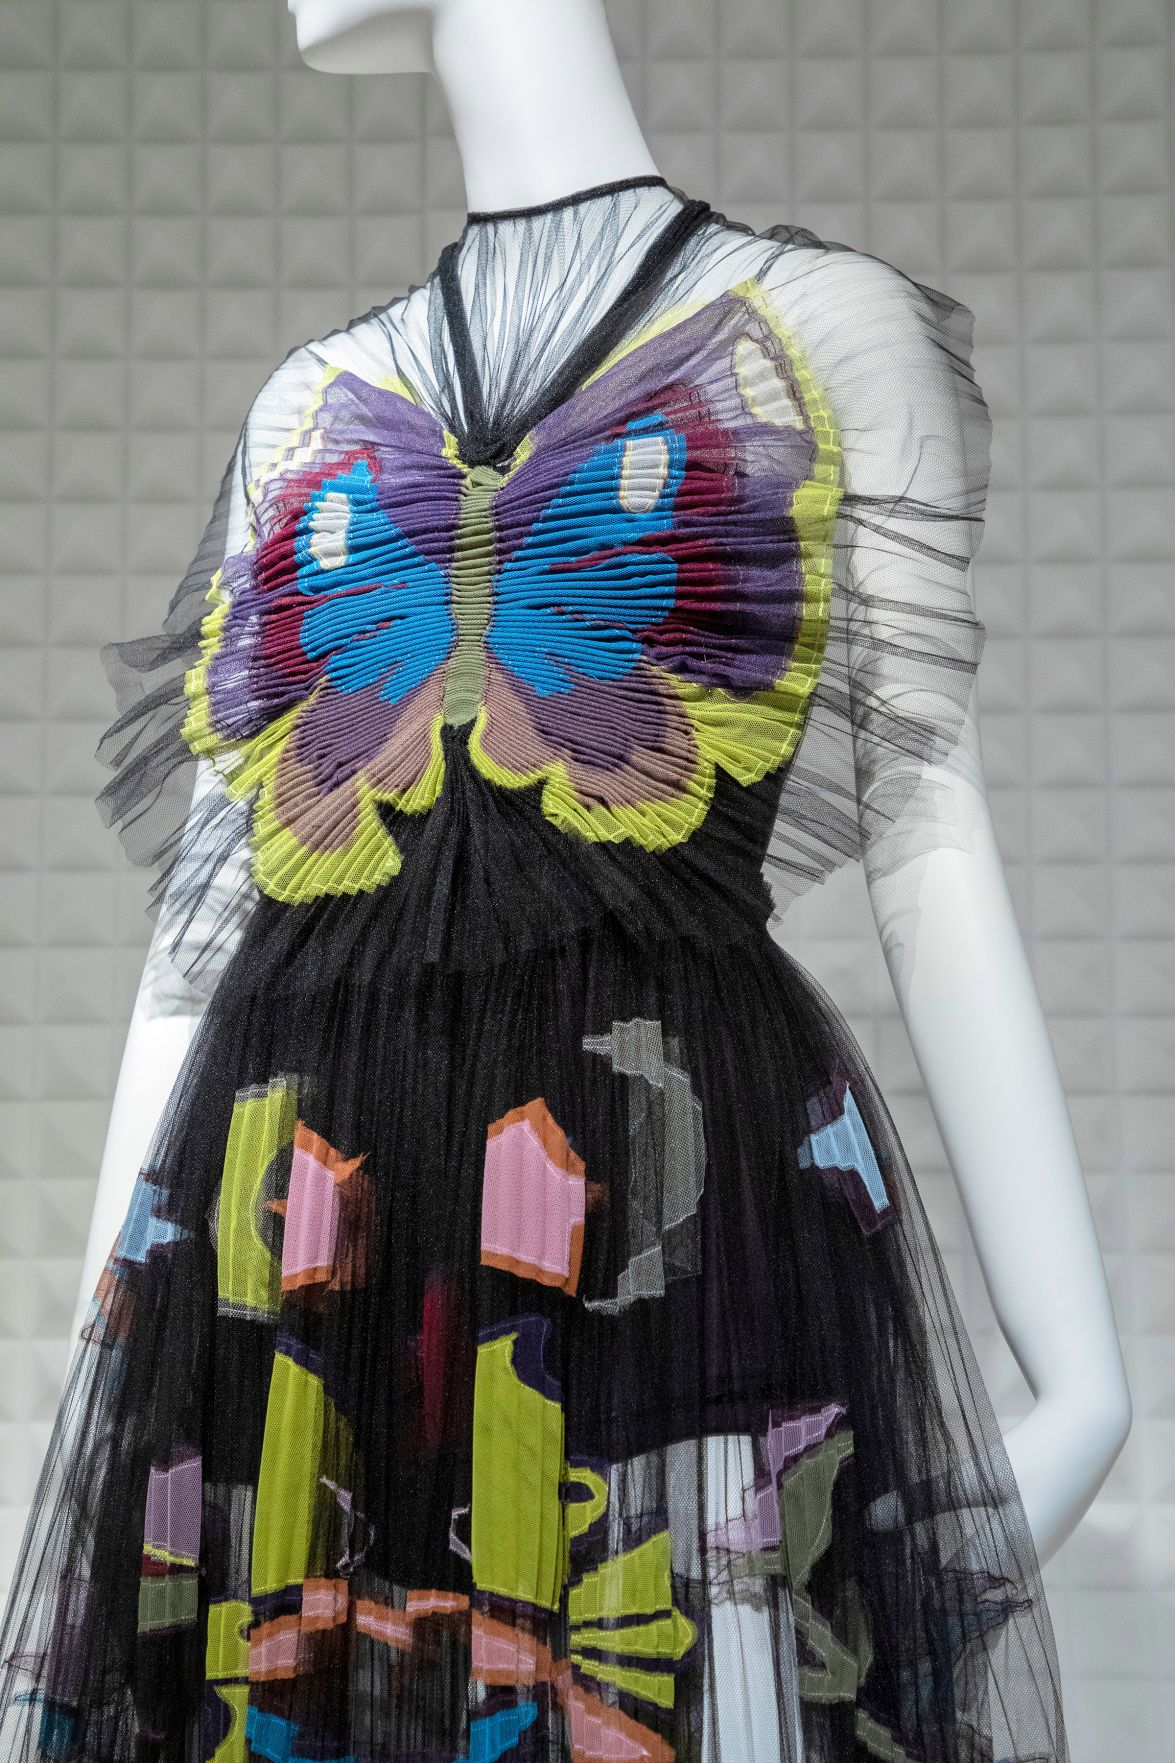 071719_MNS_SCAD_Kaleidoscope_002 (005) Mary Katrantzou butterfly dress